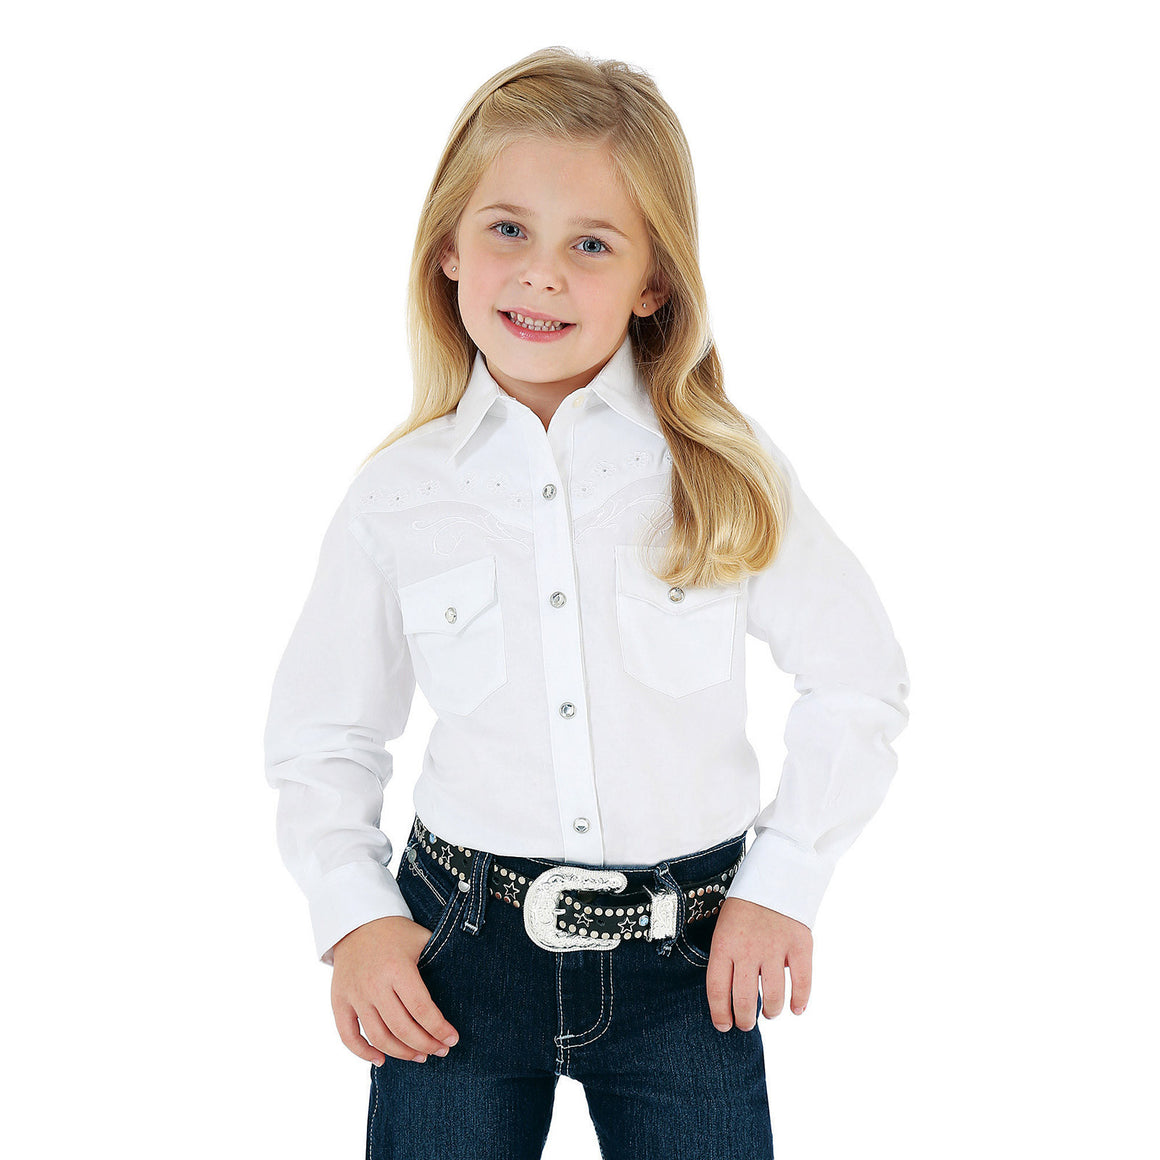 Wrangler® Long Sleeve Solid Shirt with Rhinestones/Embroidery - White - Kerlin's Western and Work Wear